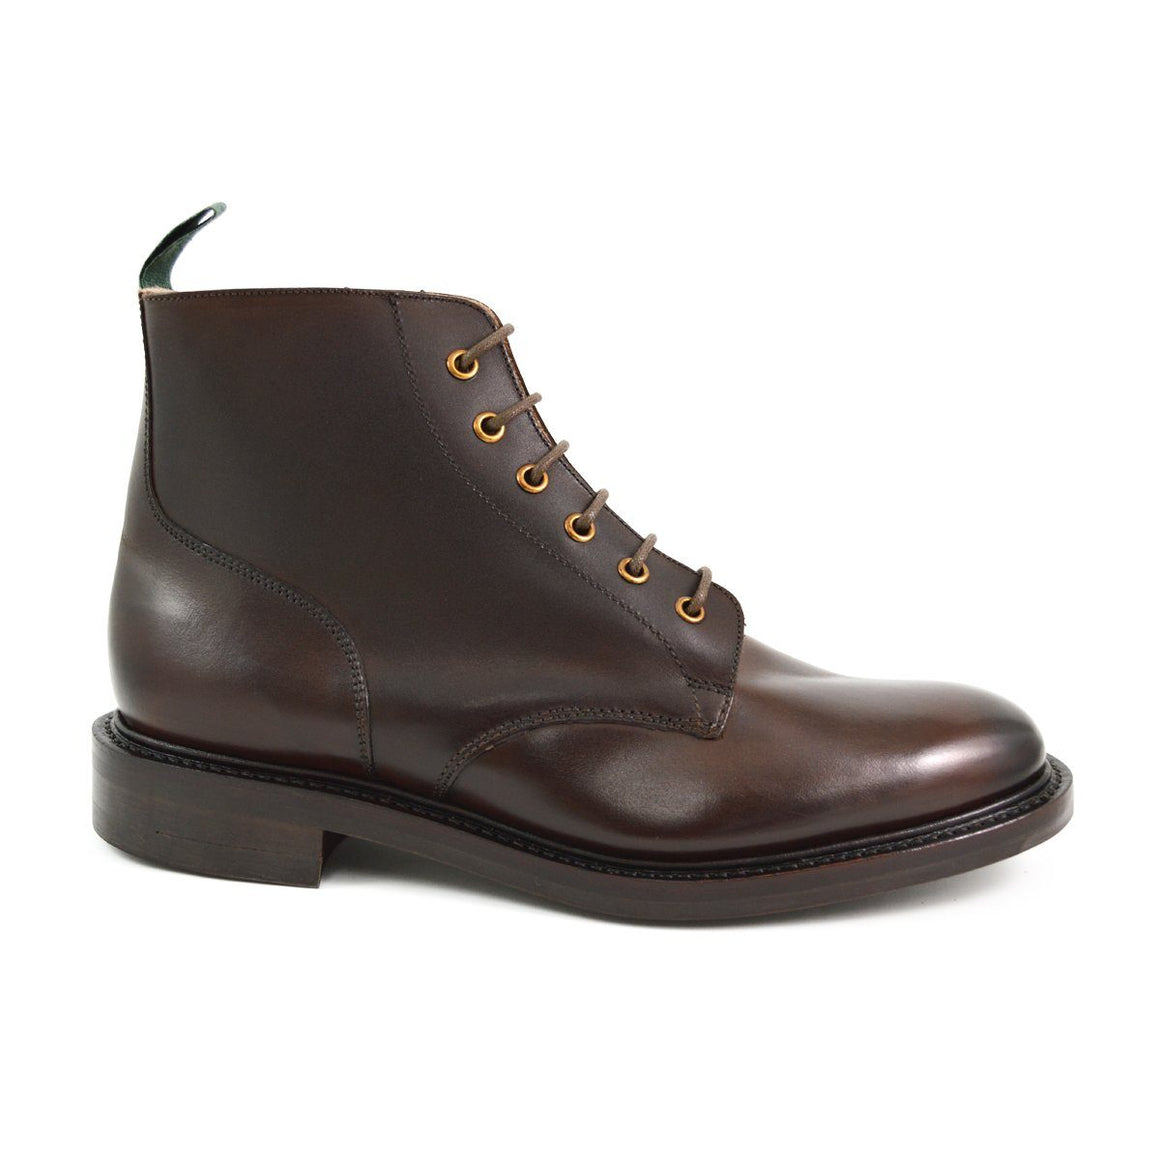 NPS GLADSTONE Plain Derby Boots - Ebony with Dainite Sole